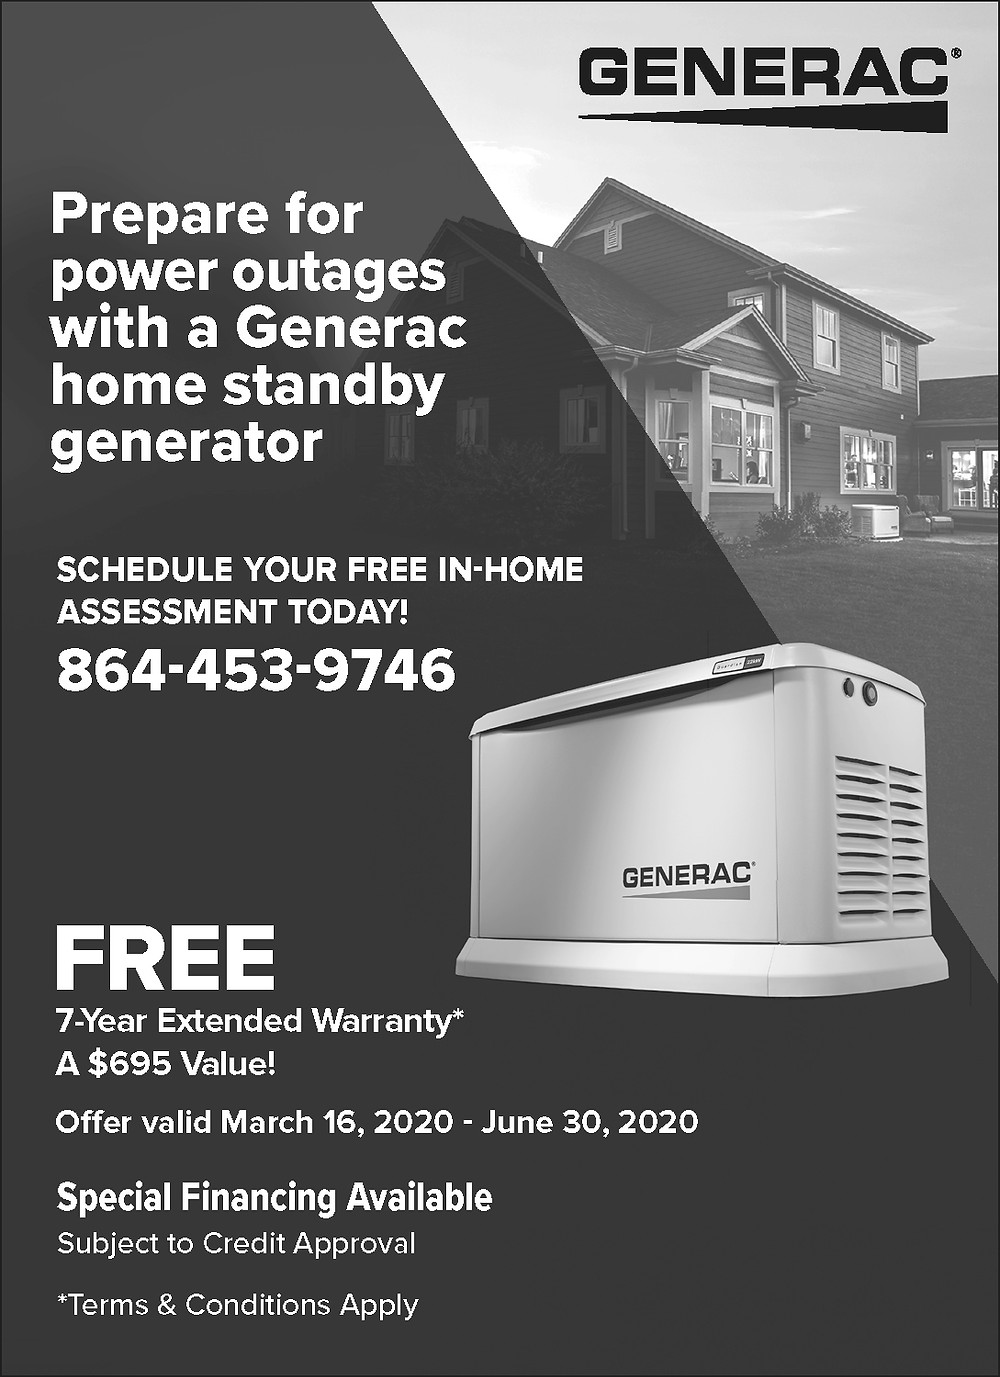 Prepare for power outages with a Generac home standby generator. Call 864-453-9746 for your free in home assessment.